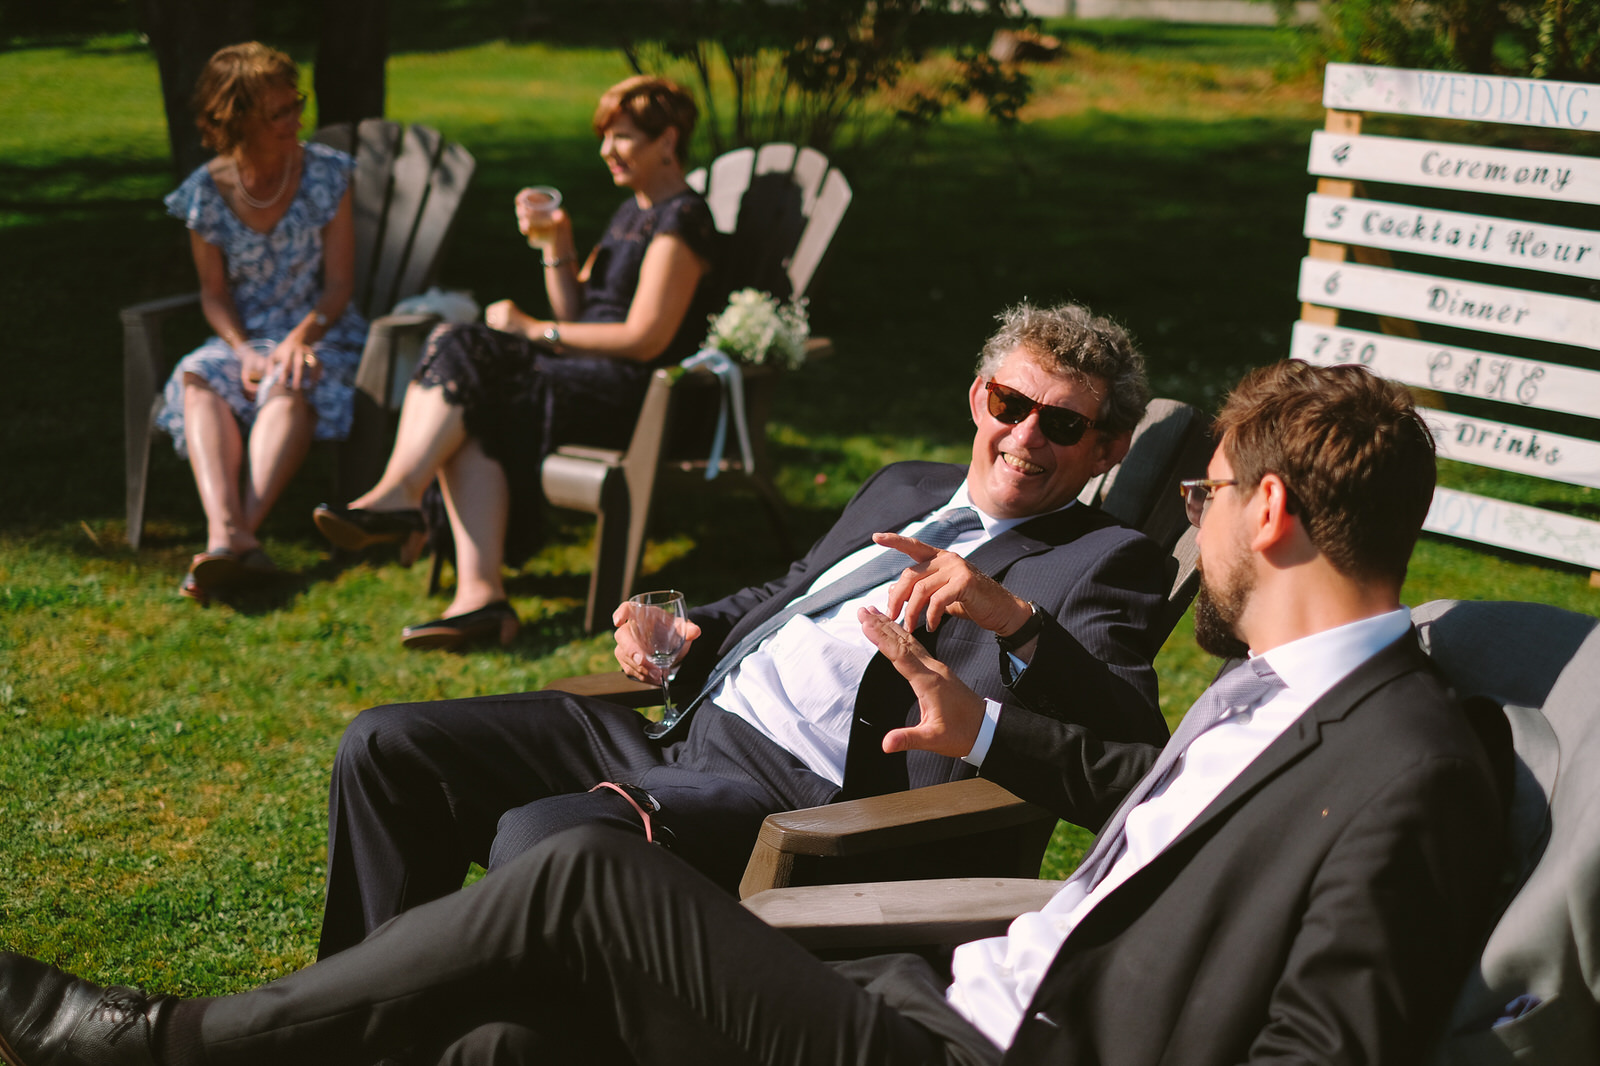 hubbards anchorage house outdoor wedding evan mcmaster-50.jpg